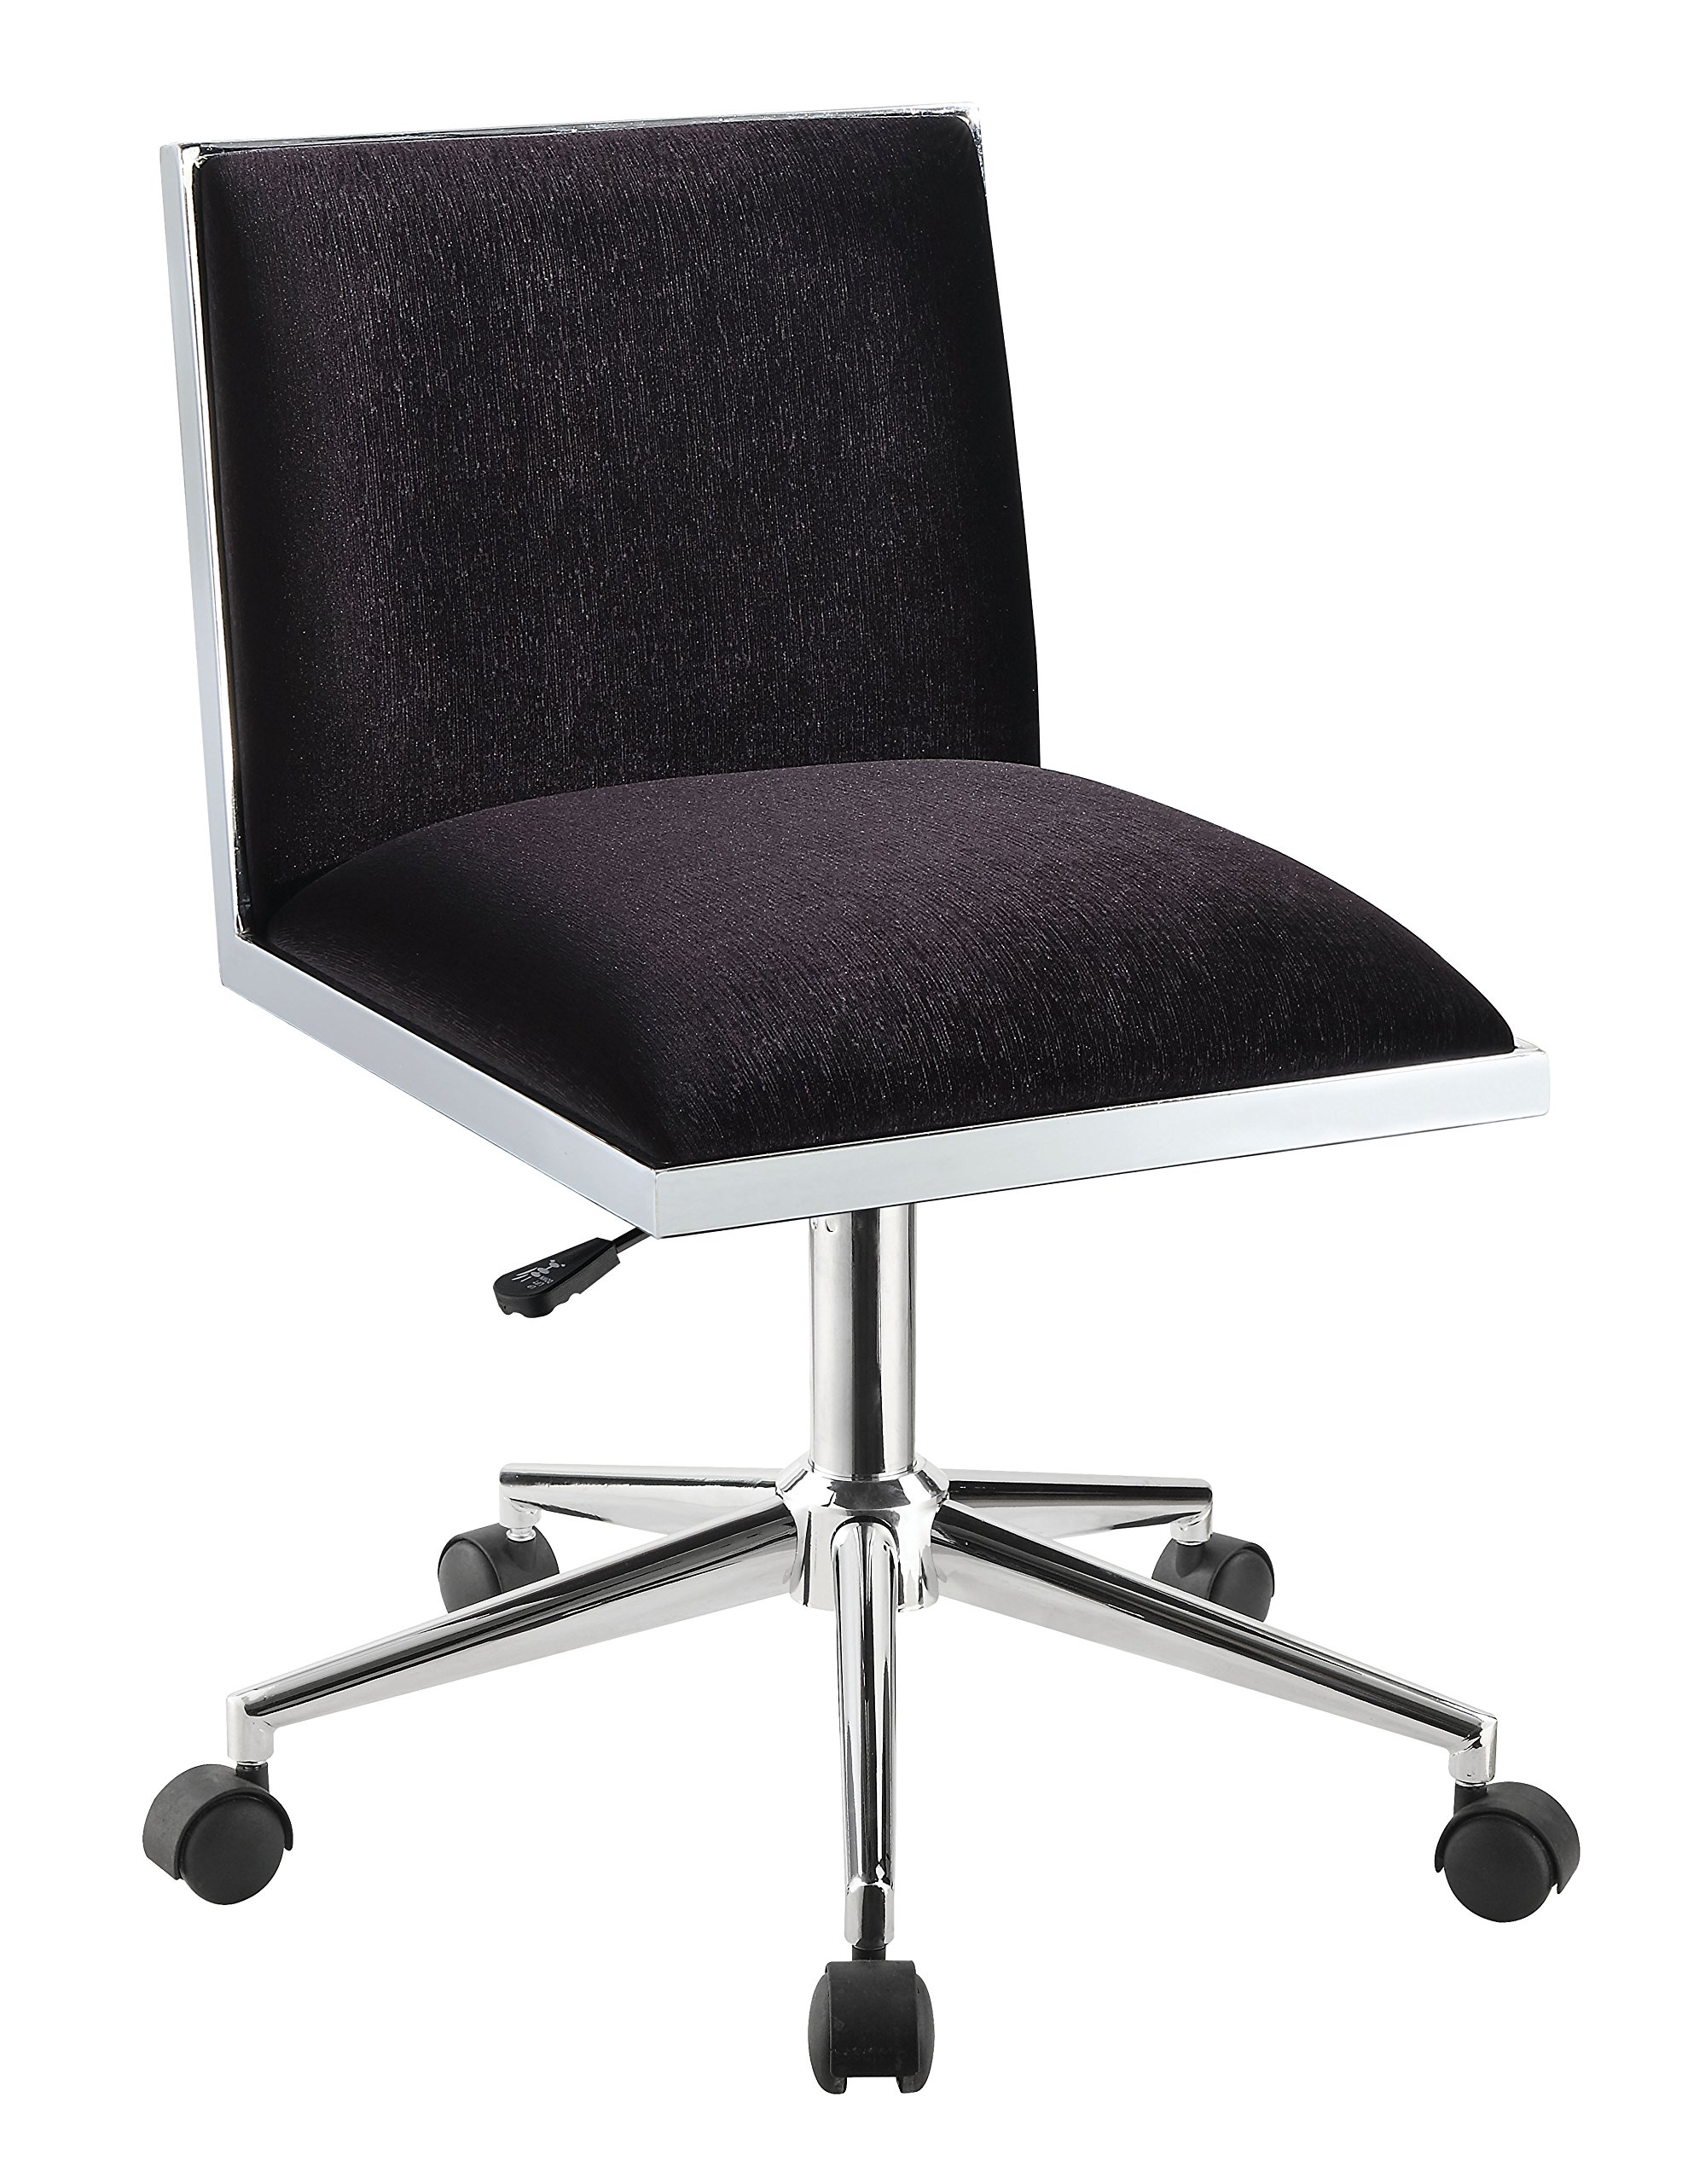 HOMES: Inside + Out IDF-FC655BK Violas Office Chair, Black